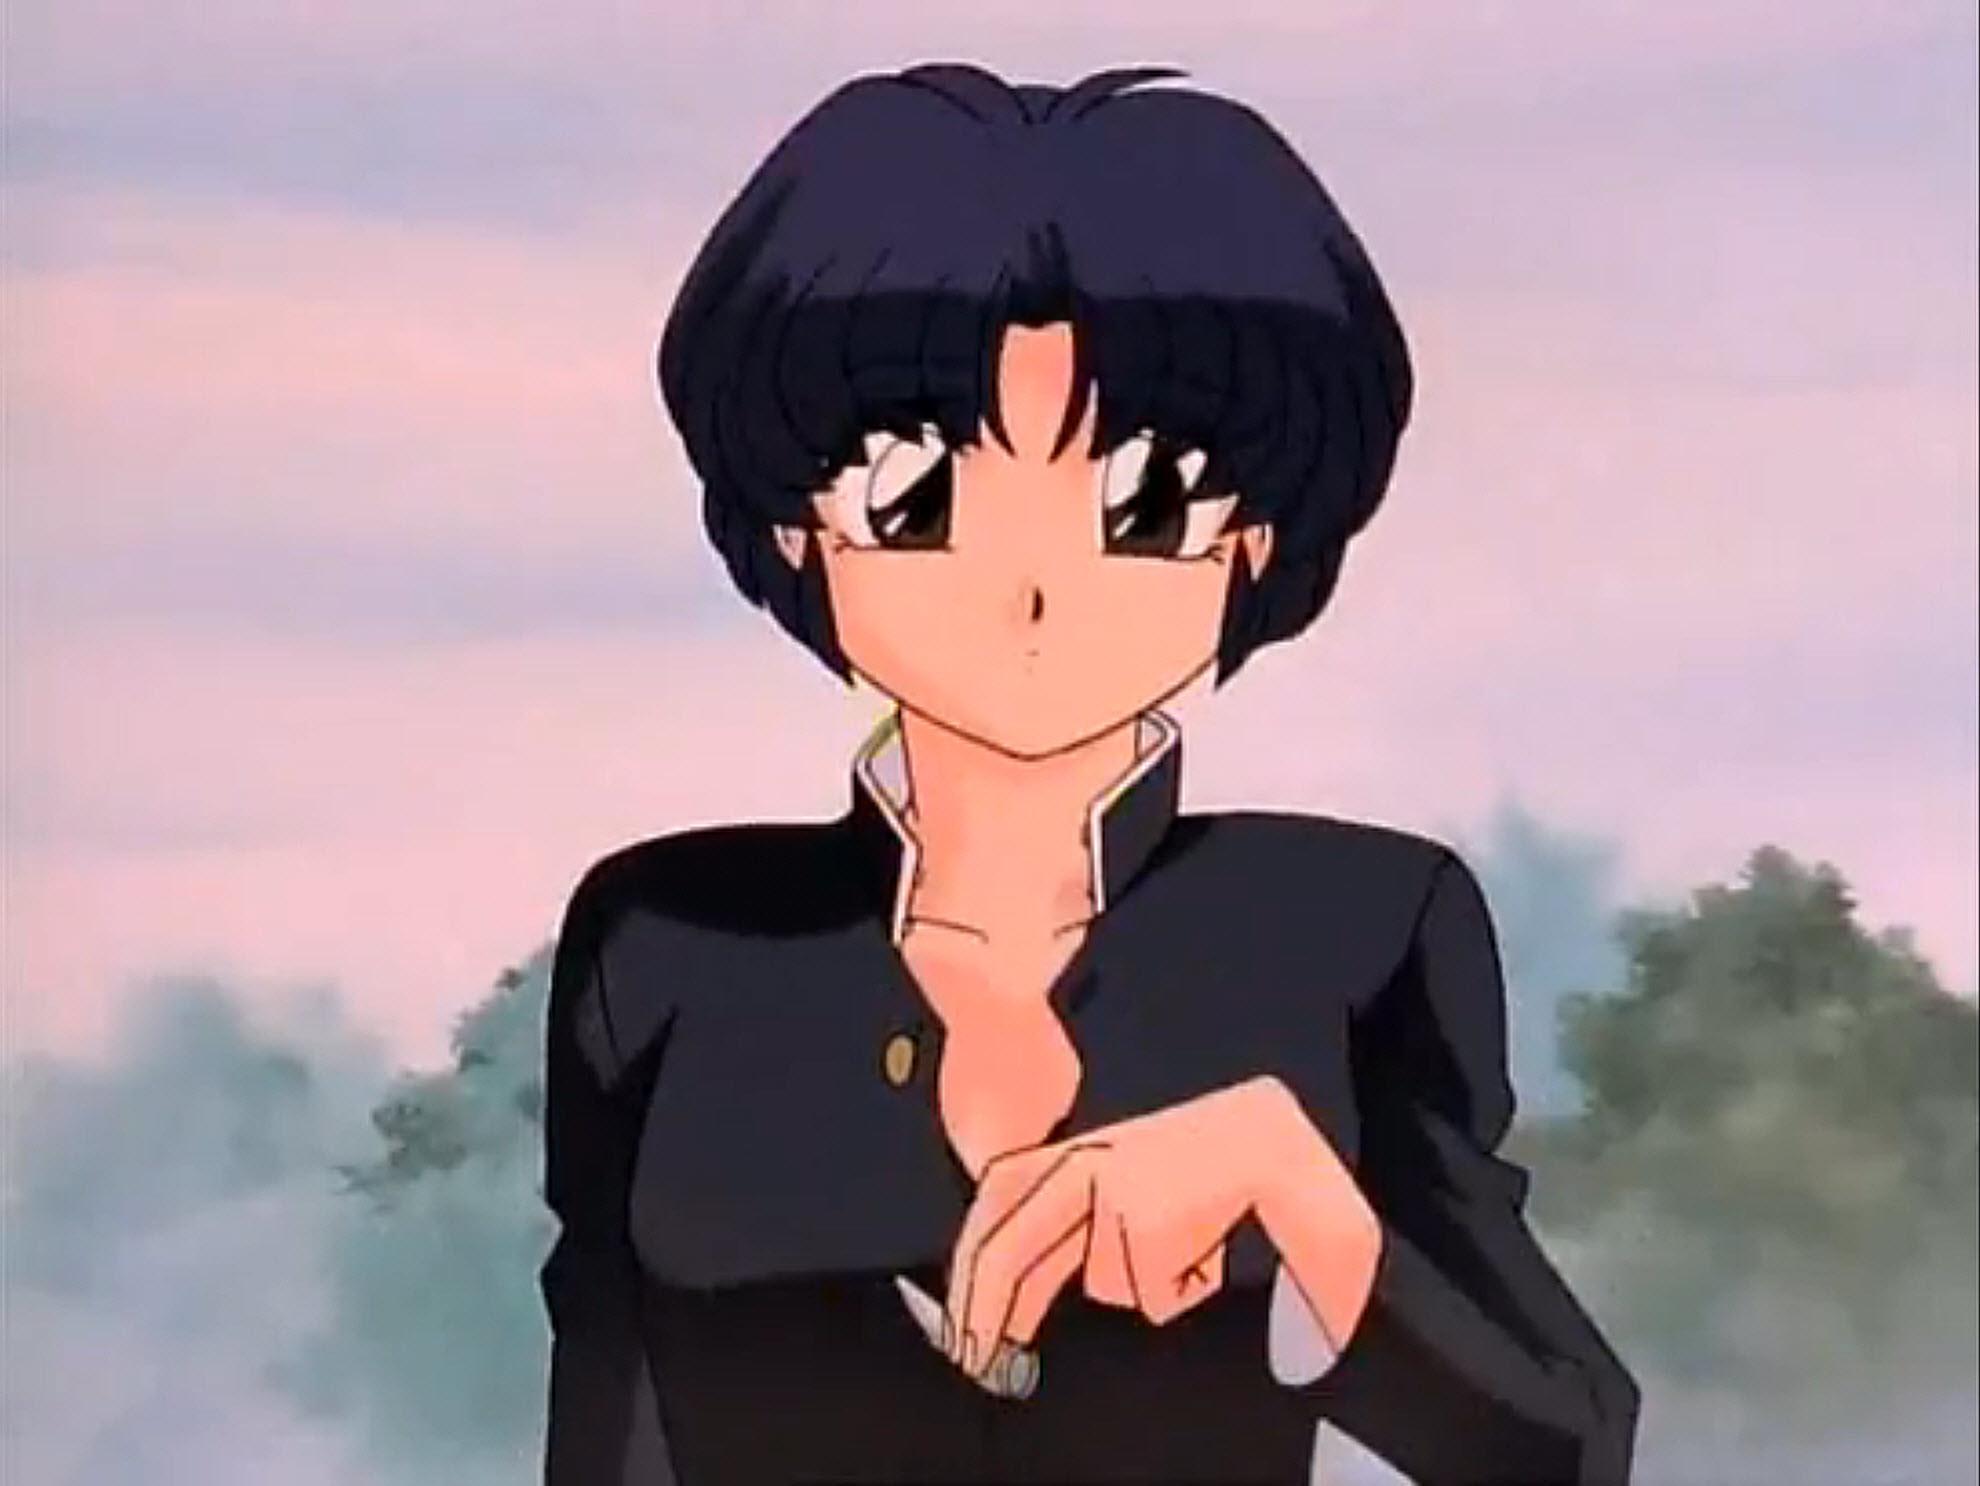 Res: 1980x1486, ranma 1 2 (a boy who changes in to a girl) images ranma 1/2 _ Akane's rush  to save Ranma HD wallpaper and background photos